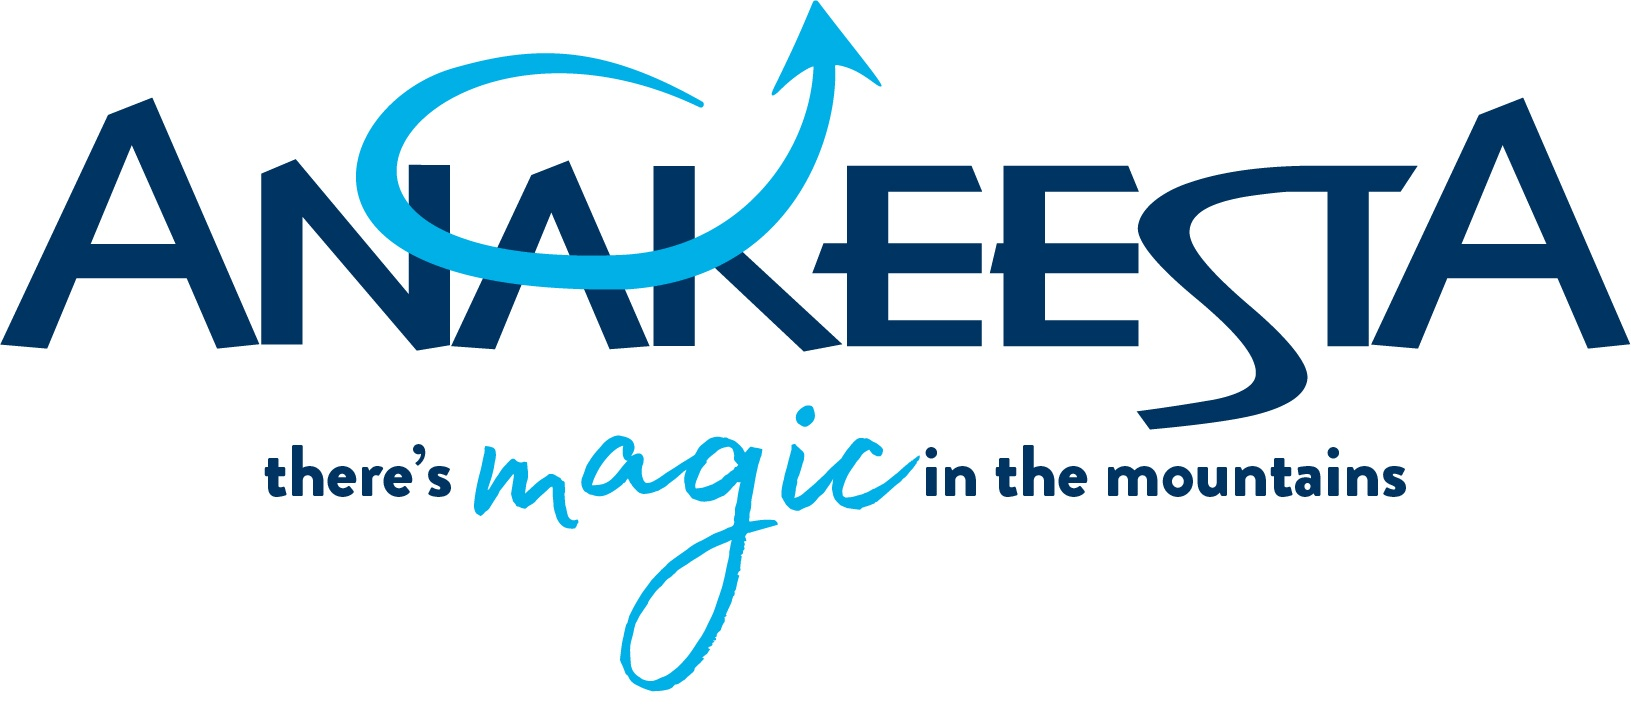 Anakeesta logo-with tagline- color.jpg